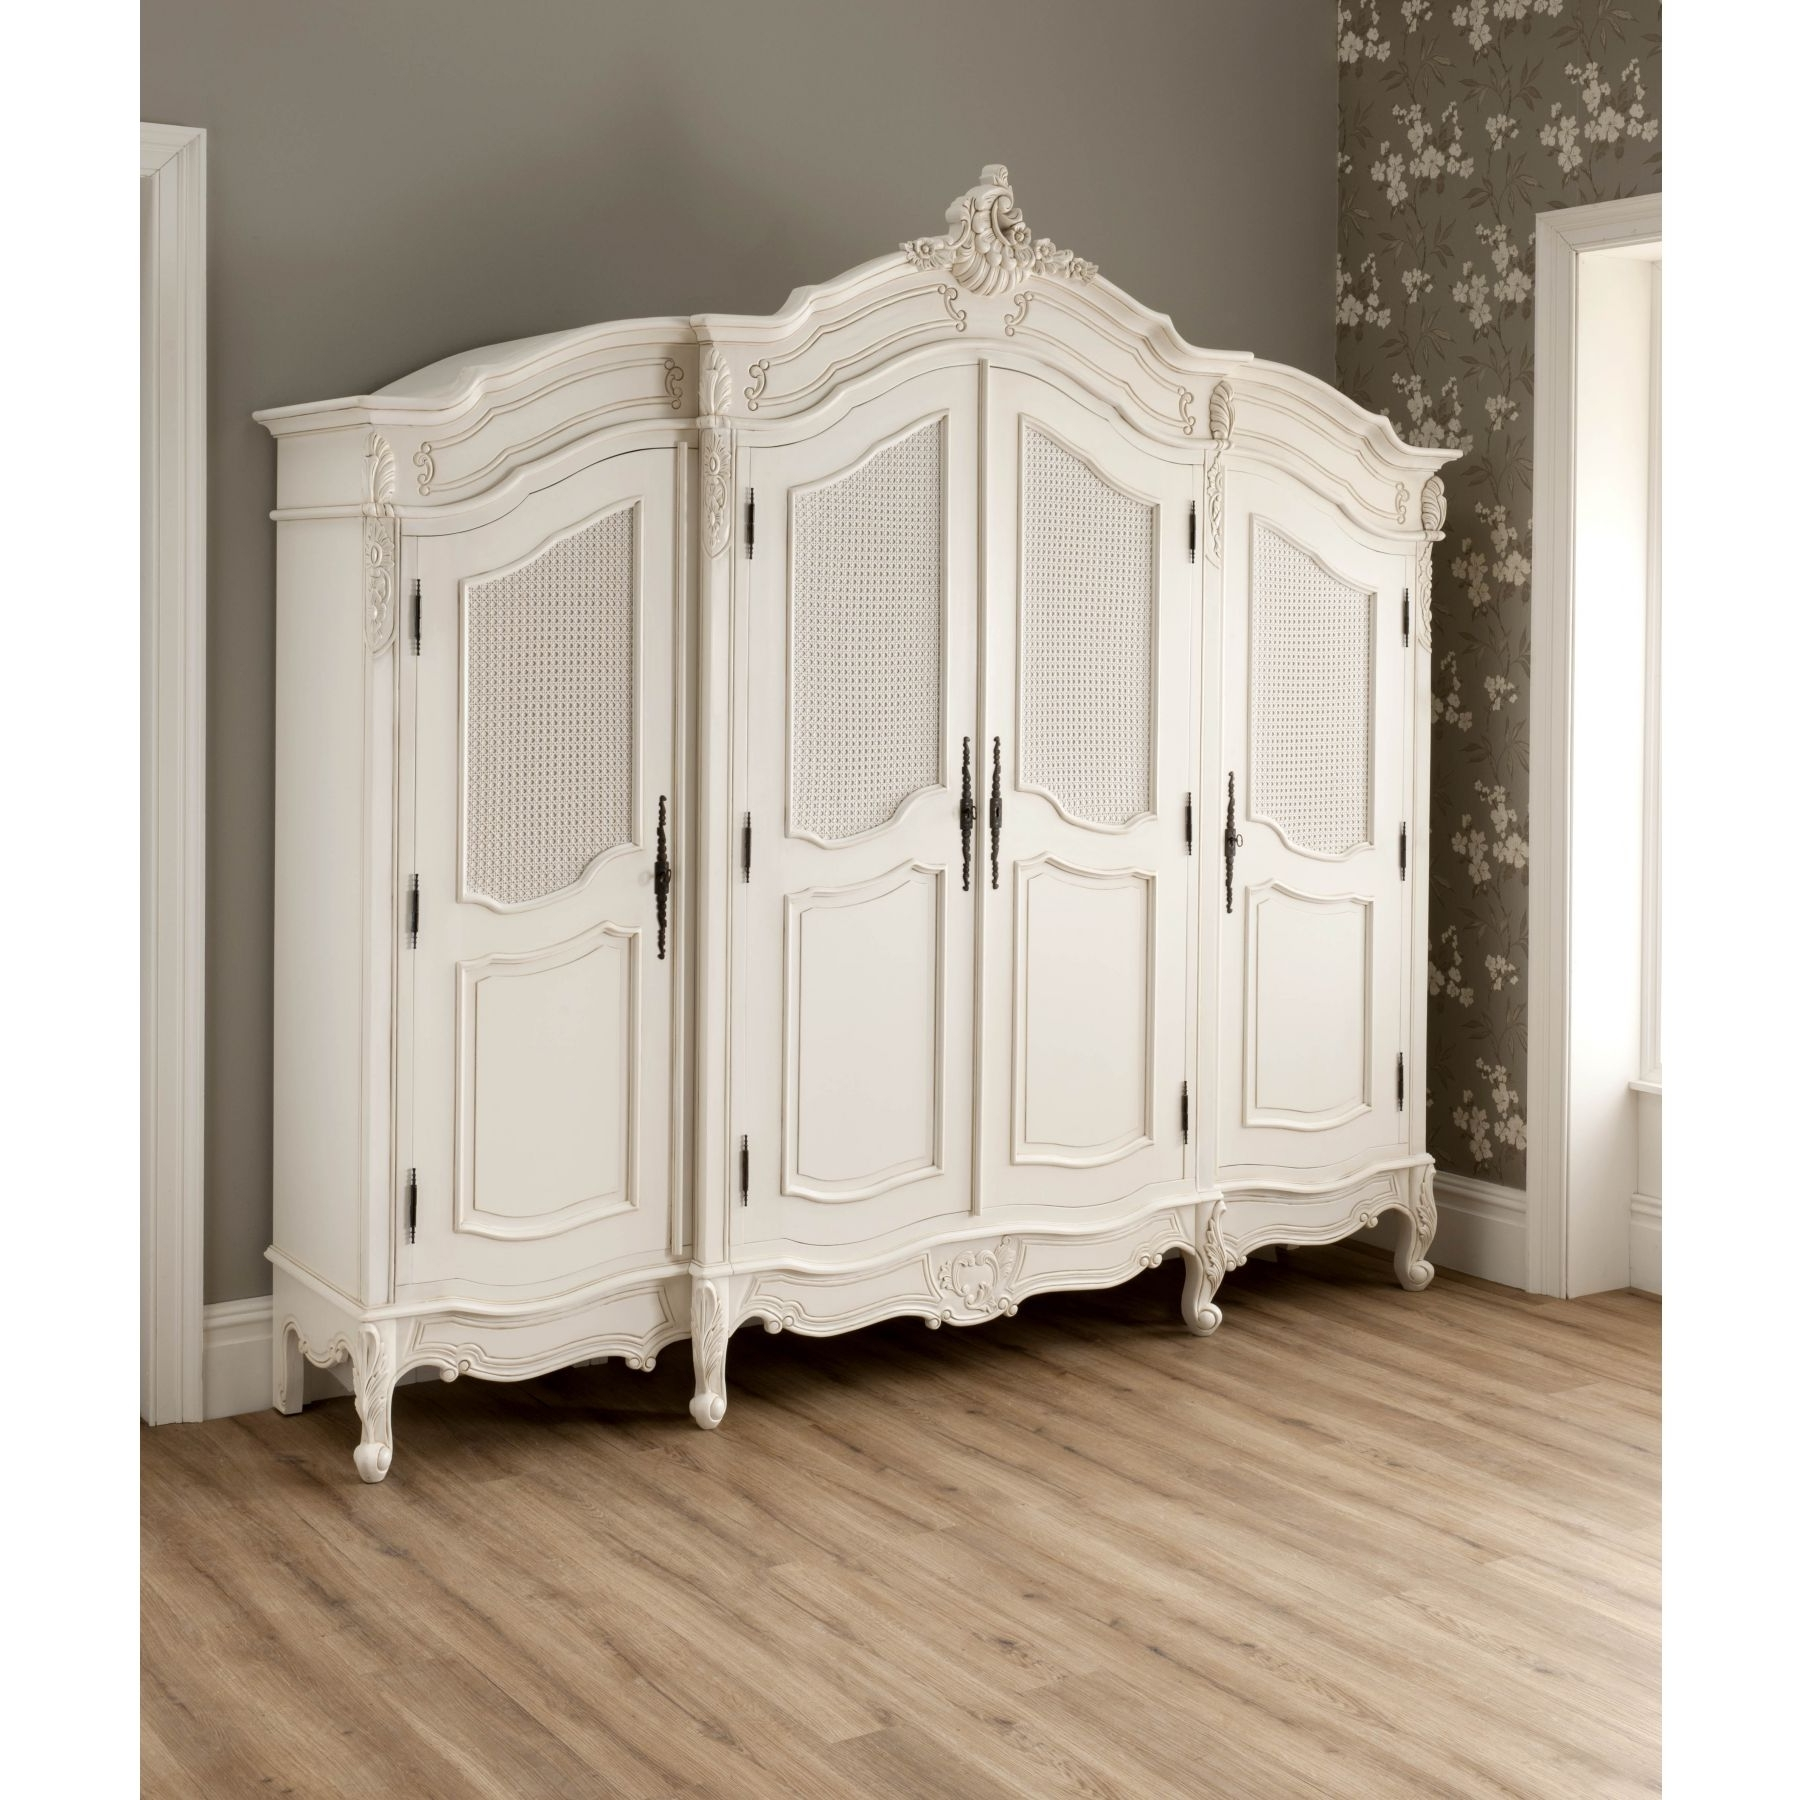 Home Design : Fabulous French Shabby Chic Wardrobes Sophia Within Most Recent Sophia Wardrobes (View 12 of 15)